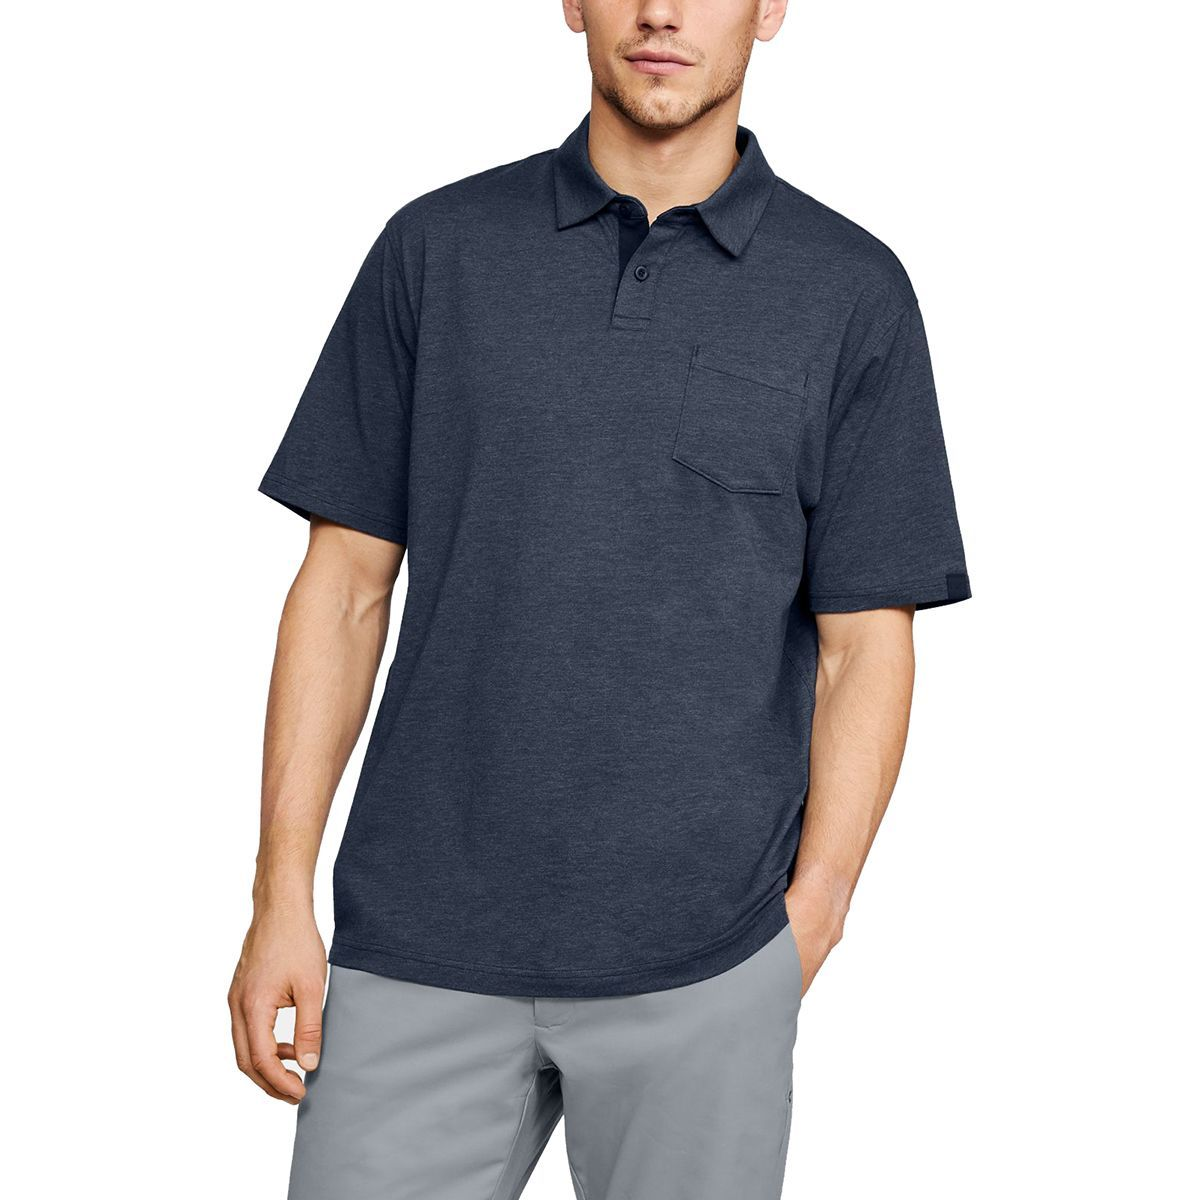 Photo of Under Armour Charged Cotton Scramble Polo Shirt – Men's